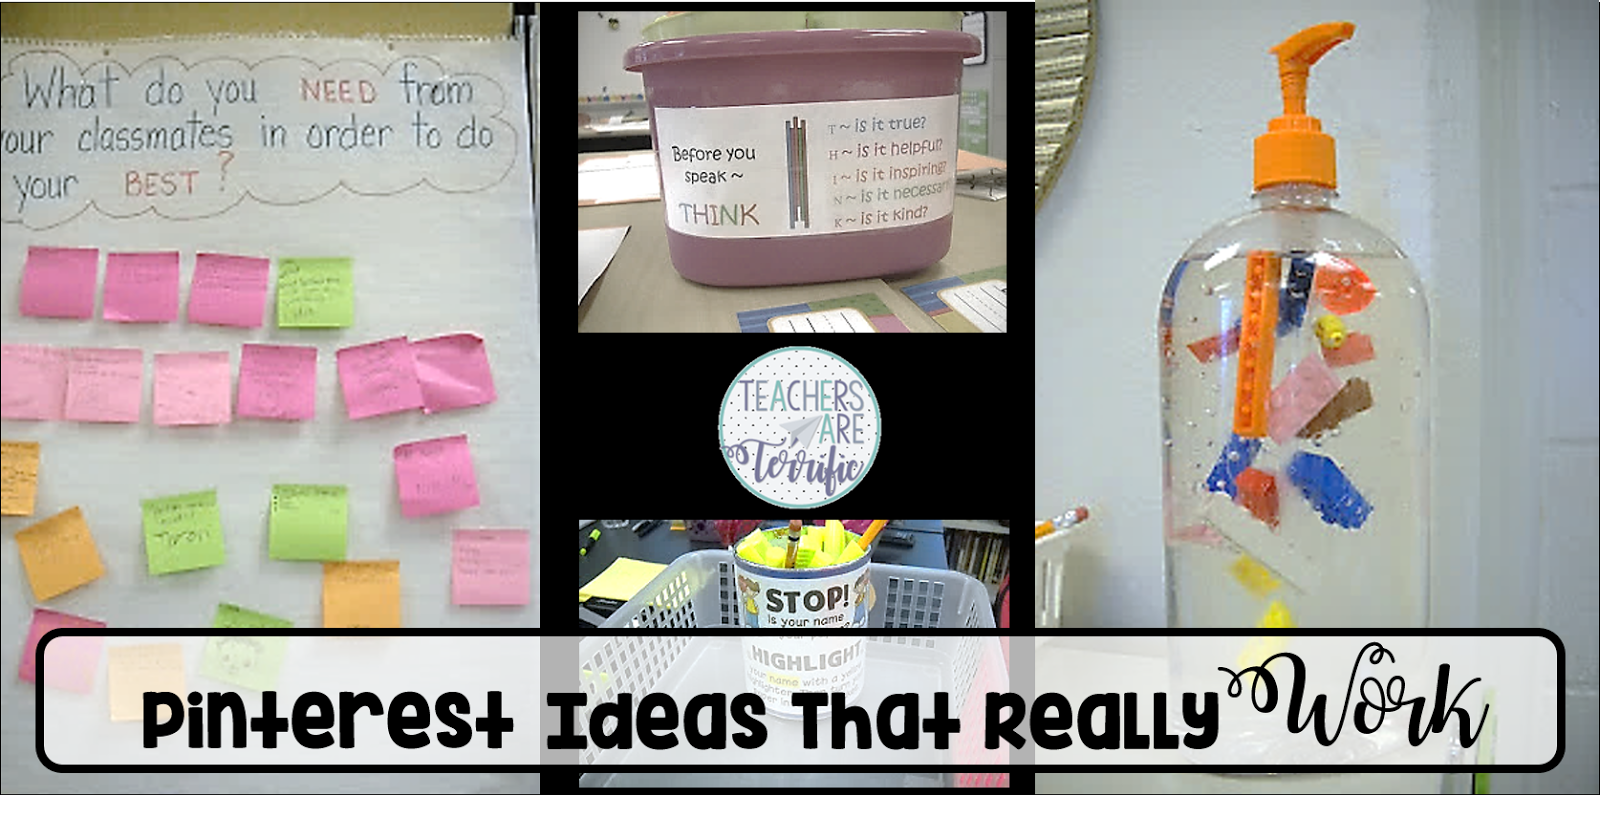 Fabulous classroom Ideas from Pinterest that Really Work!